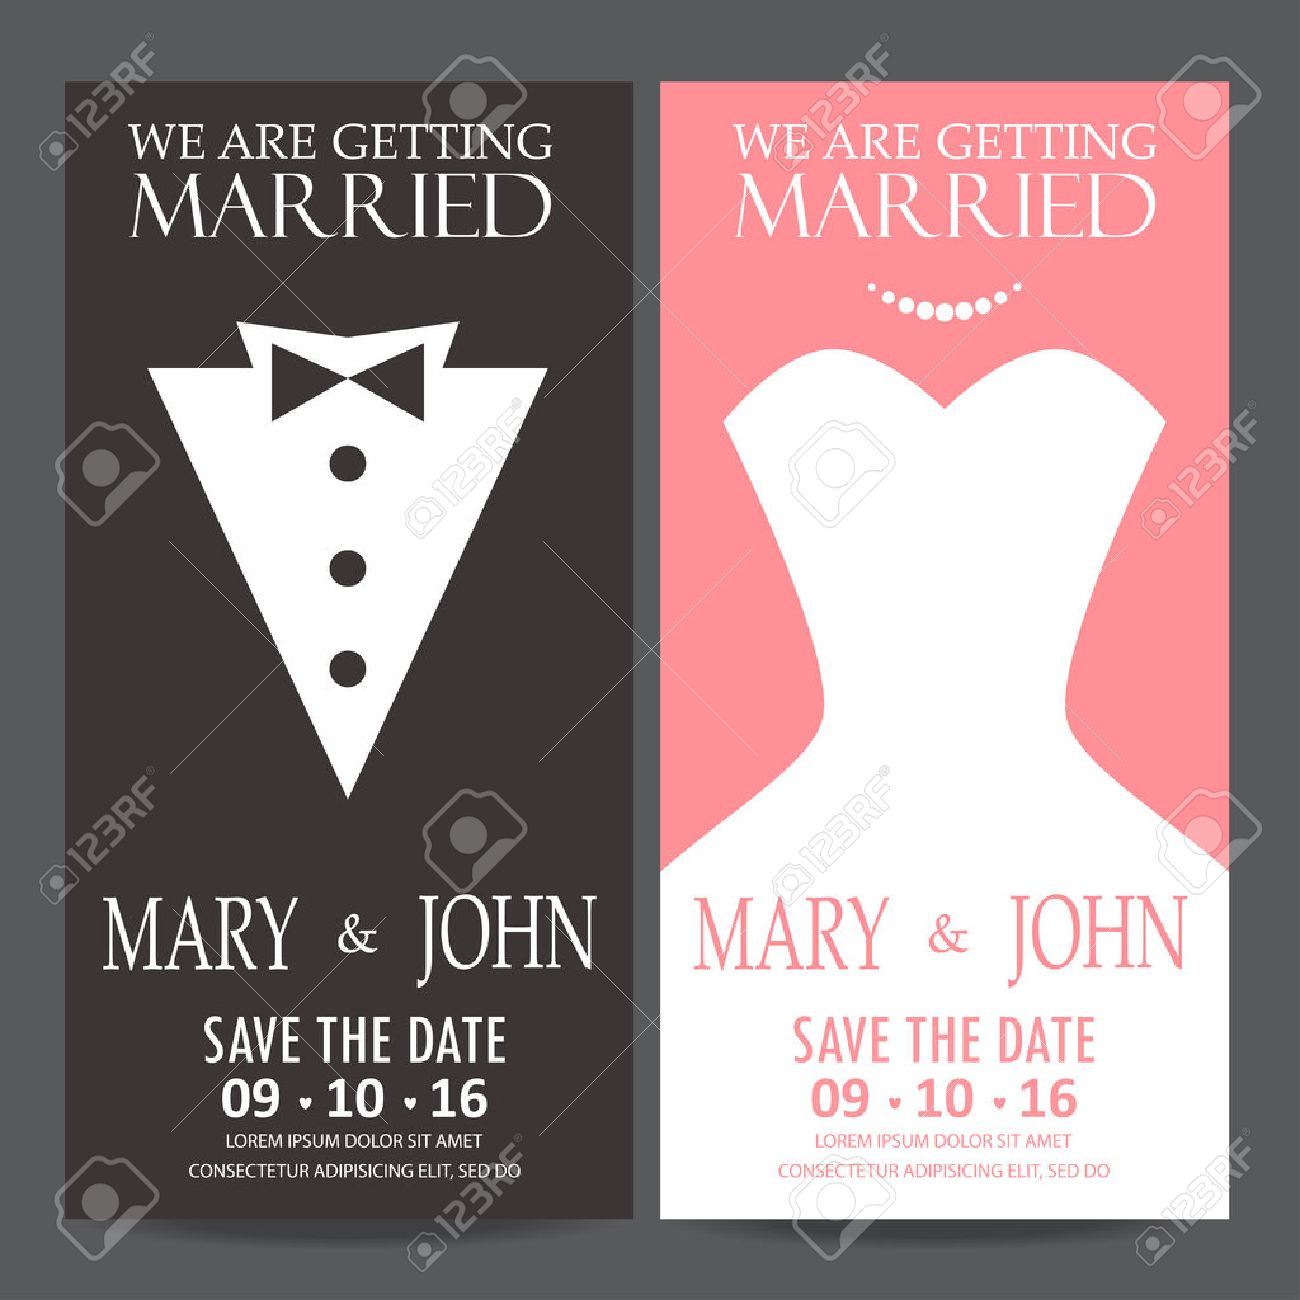 Valentine Wedding Invitations Image collections - Party ...